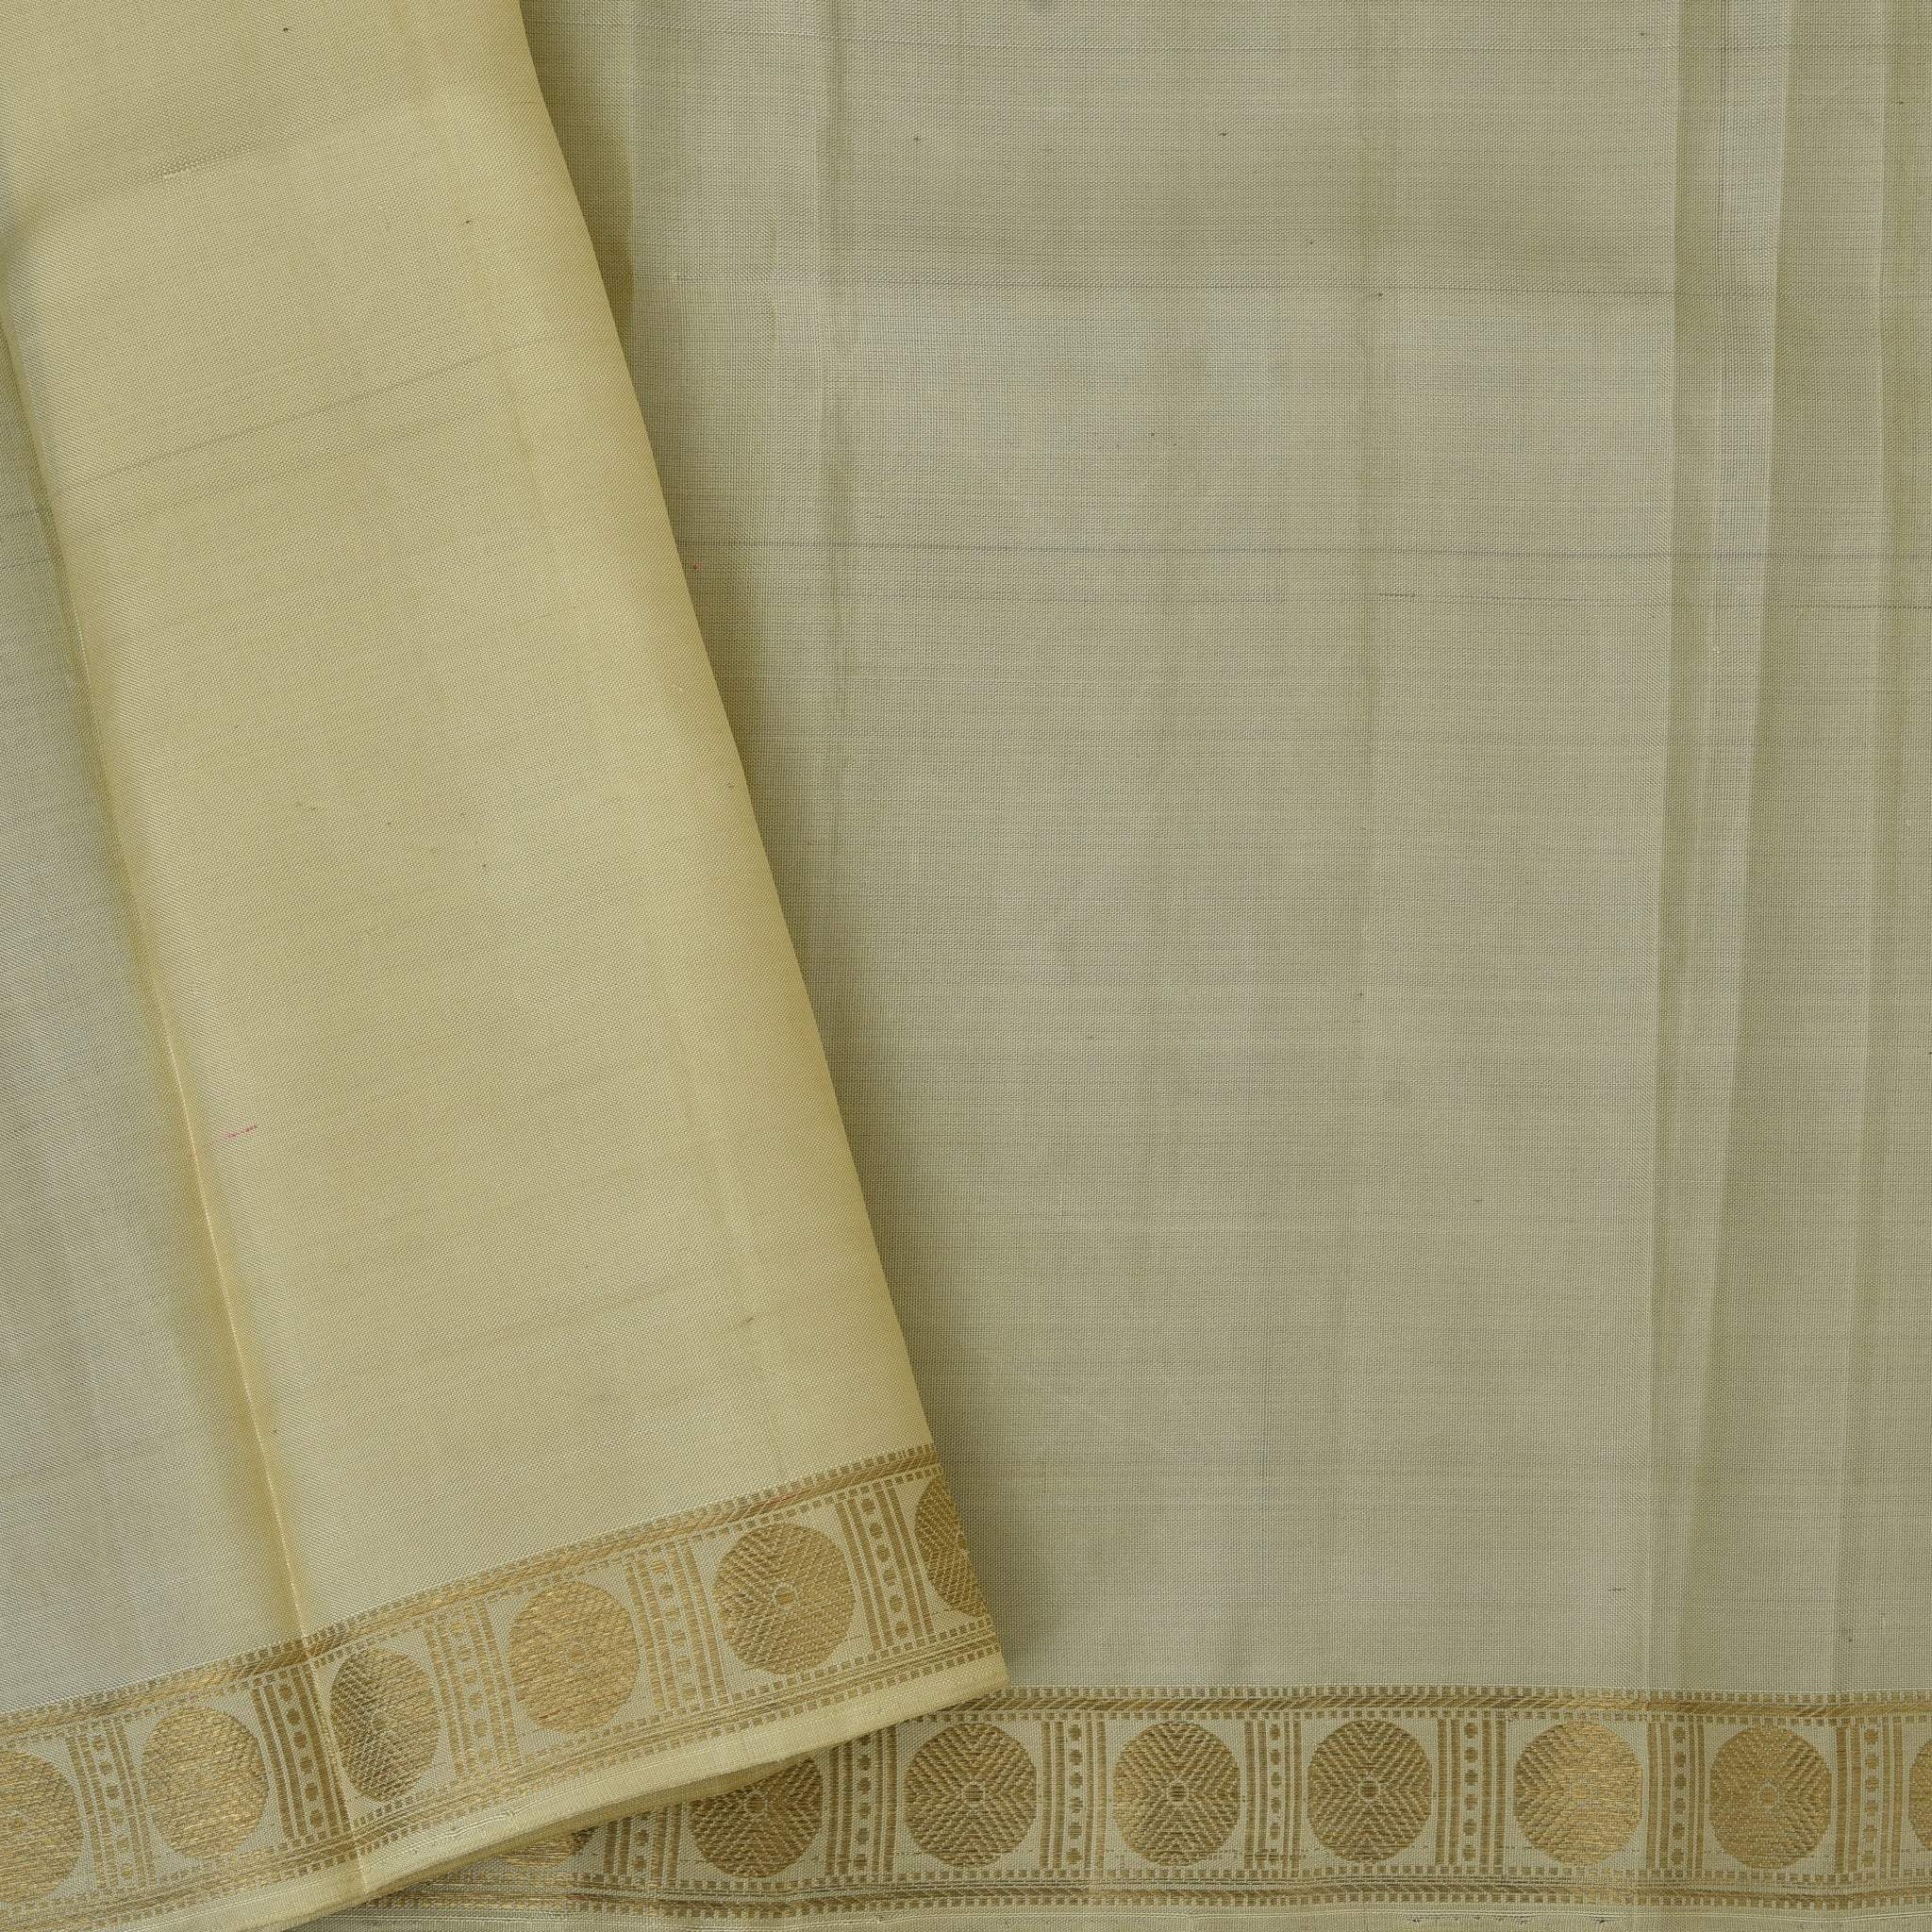 BB075449-Soft Cream checkered Borderless Kanjivaram Handloom Silk Saree